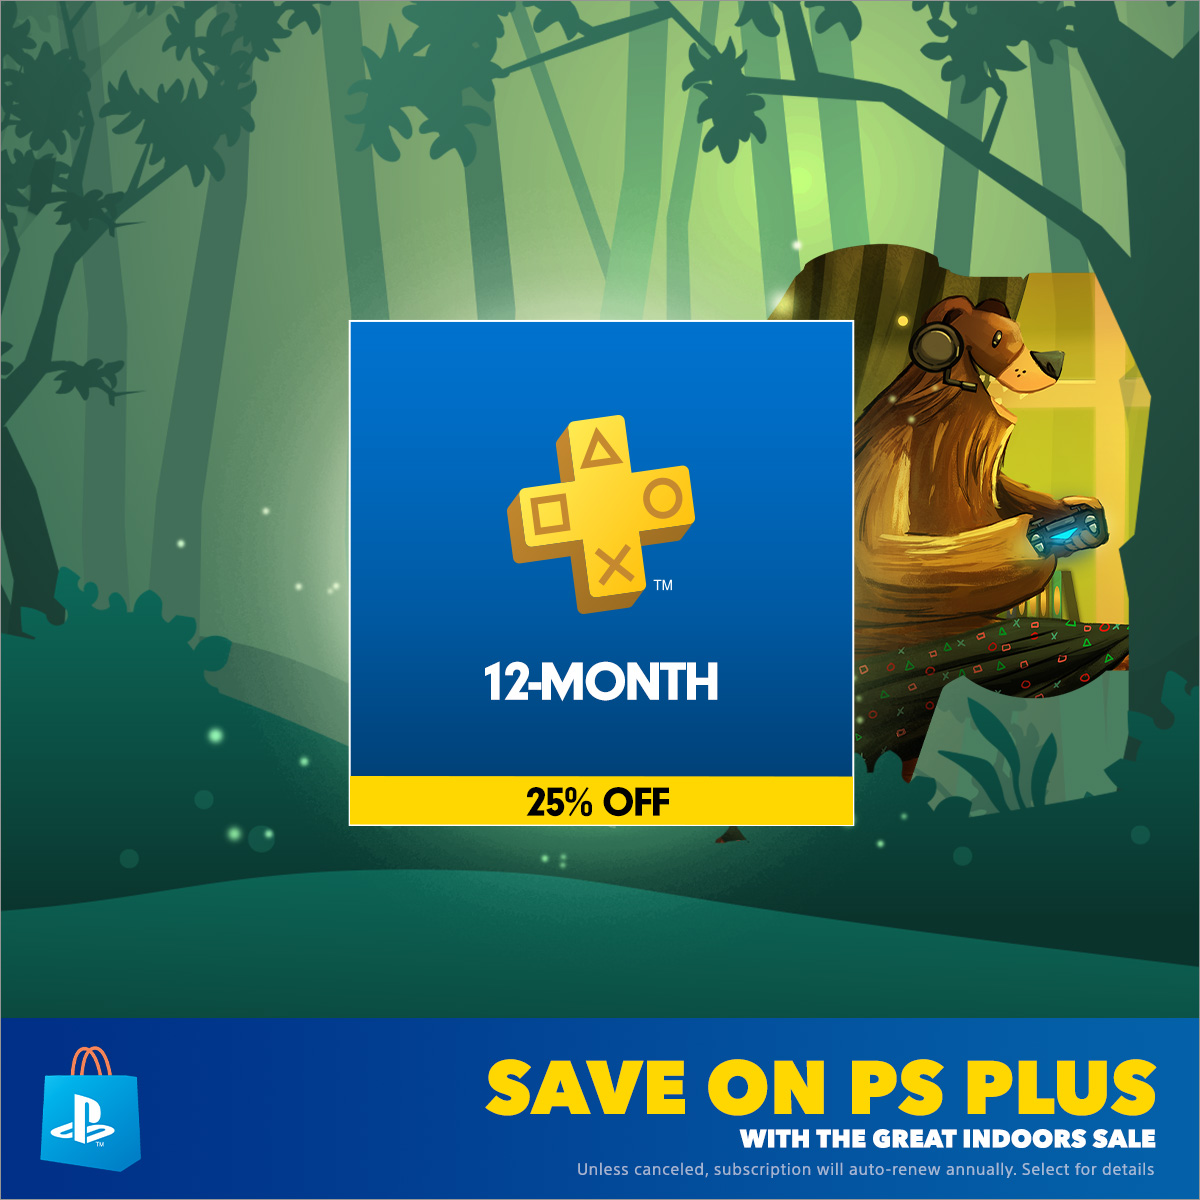 Enjoy the Great Indoors with up to 65% off at PS Store